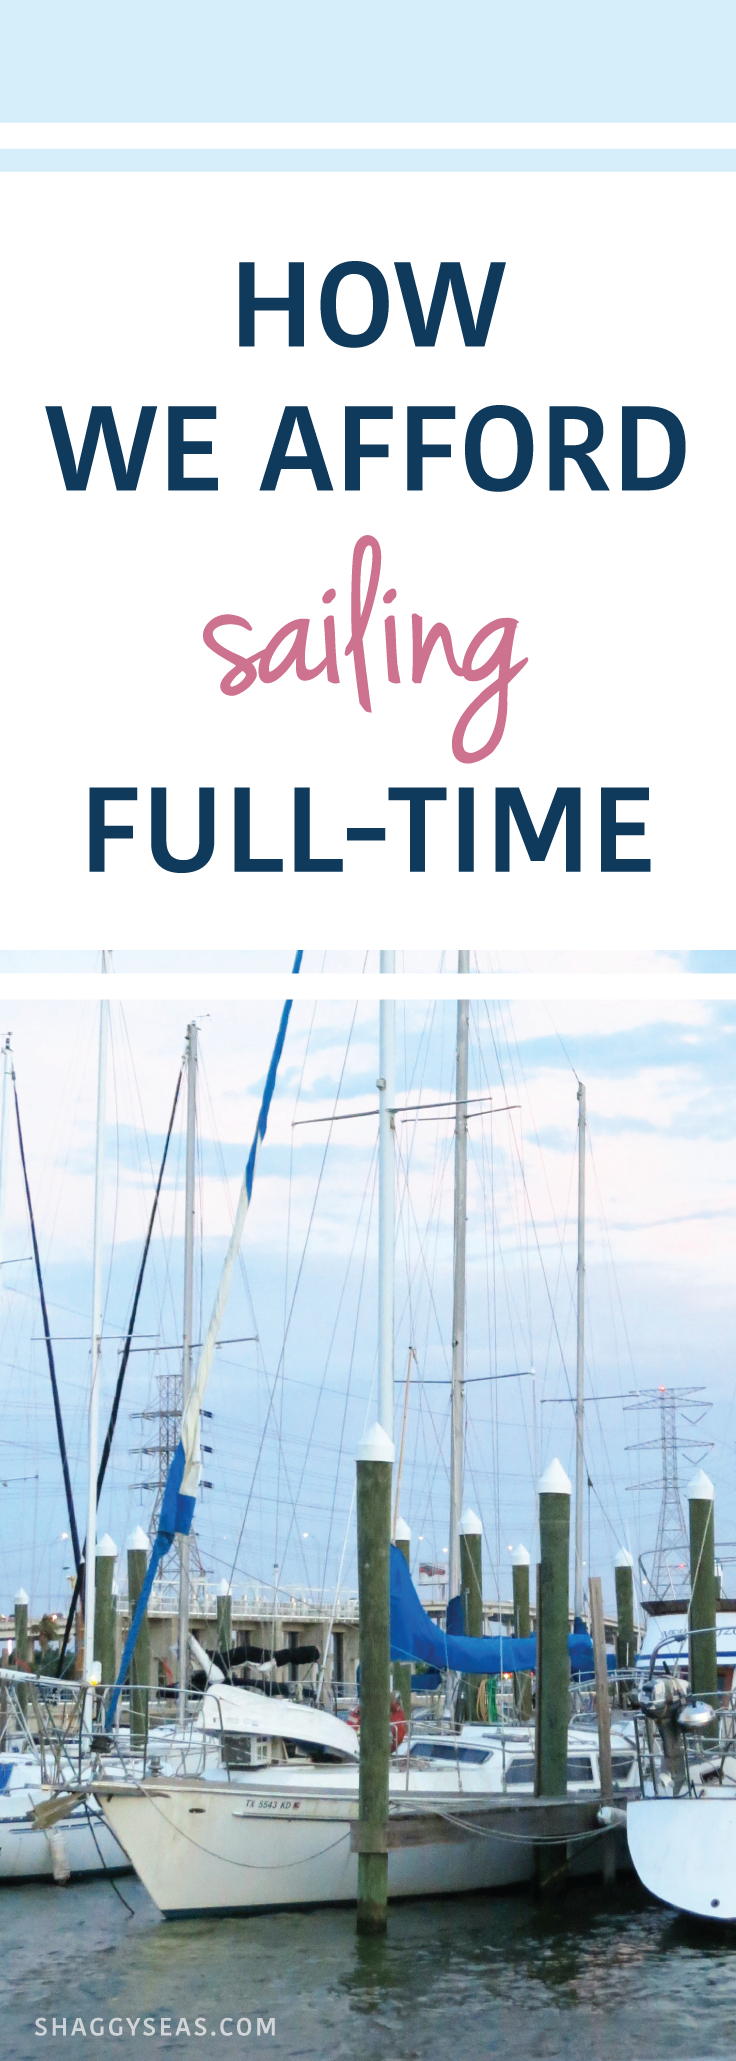 How We Afford Sailing Full-Time - ShaggySeas. Have you ever wondered if you could afford to travel full-time? Learn how two twenty-somethings afford to sail the world while working online. Who knows? Maybe you could do it too! :)